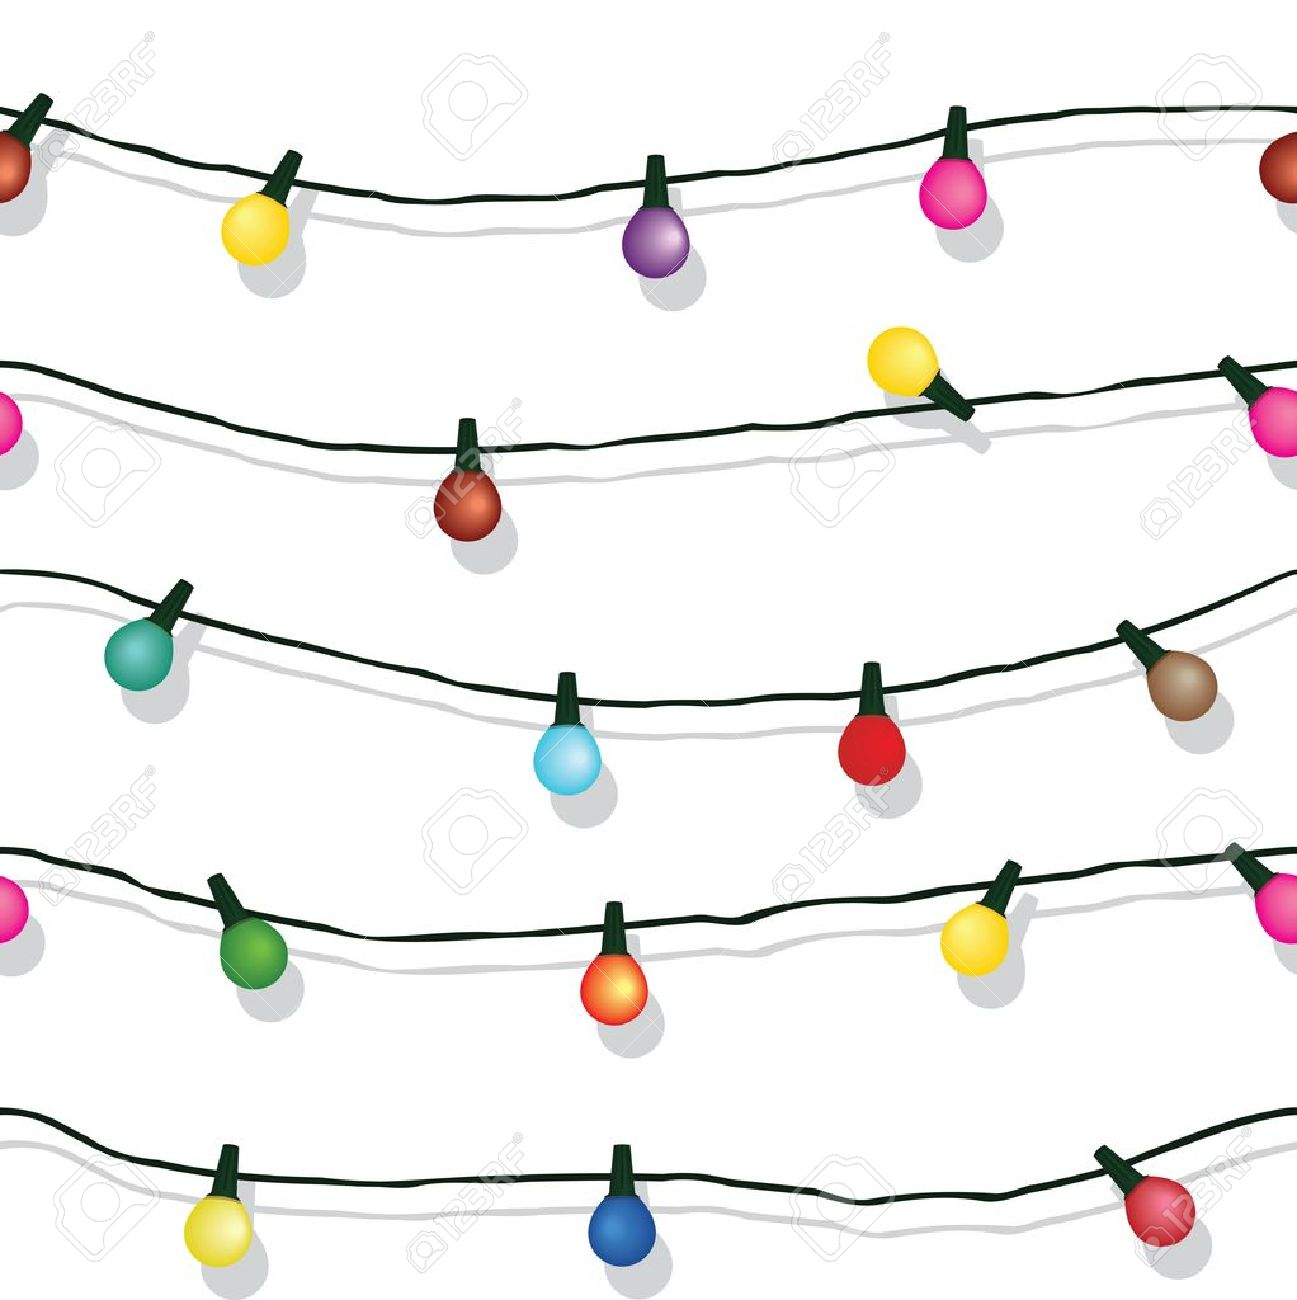 Seamless String Of Christmas Lights On Garland Background Isolated ...